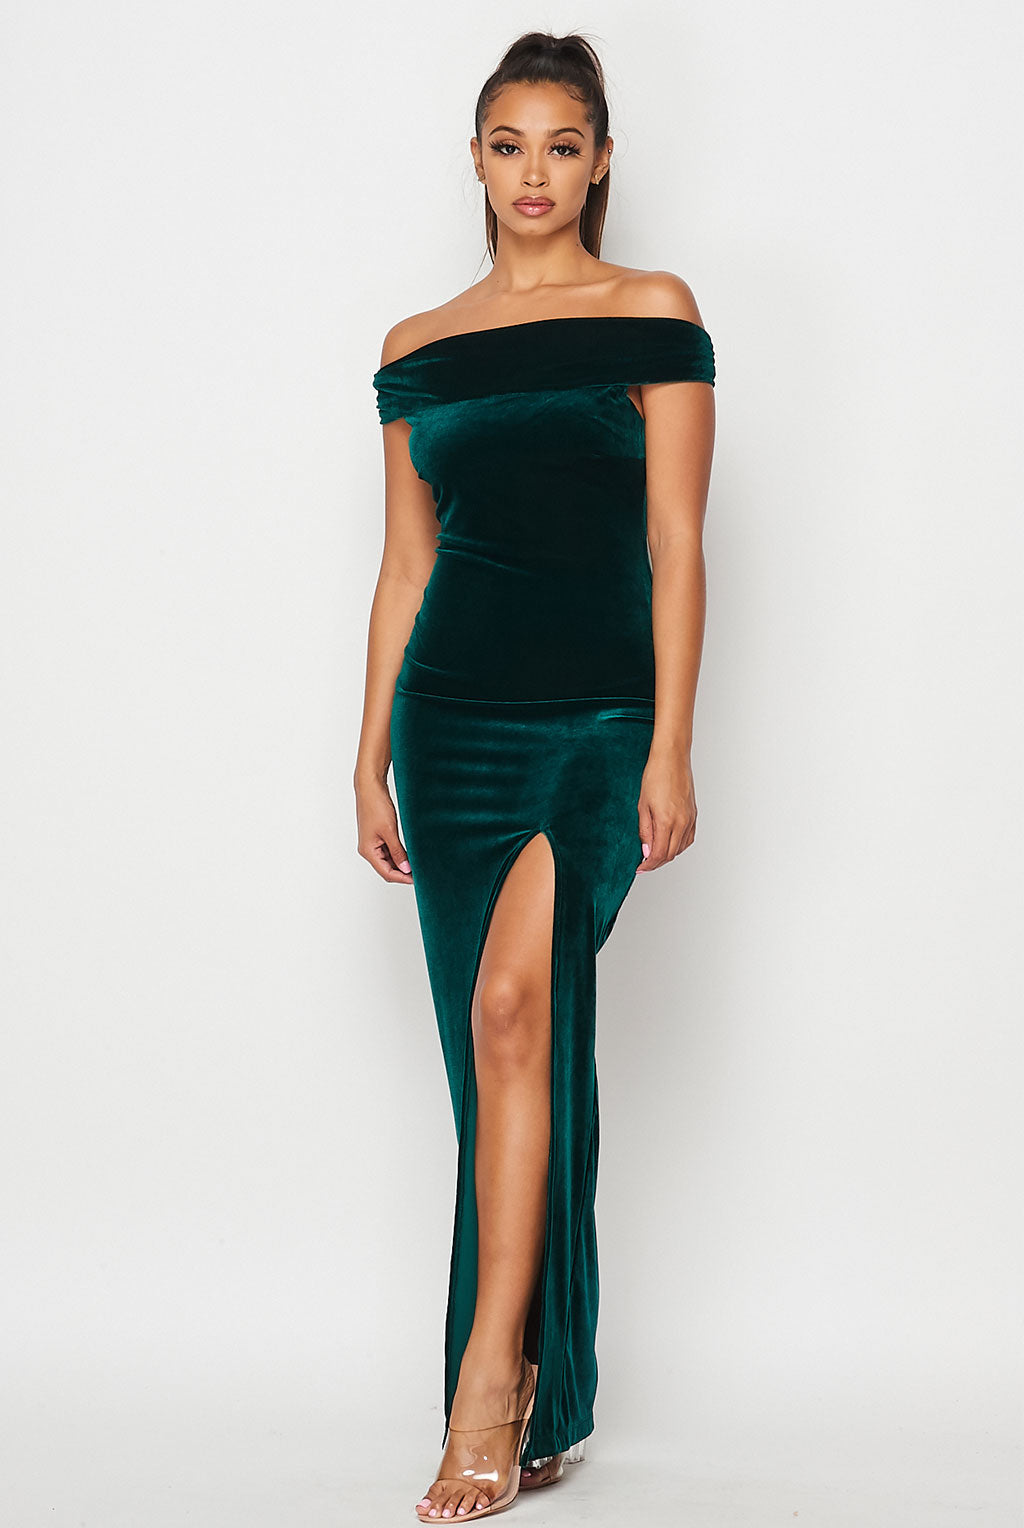 Teeze Me | Off the Shoulder Velvet Column Gown With Slit | Emerald